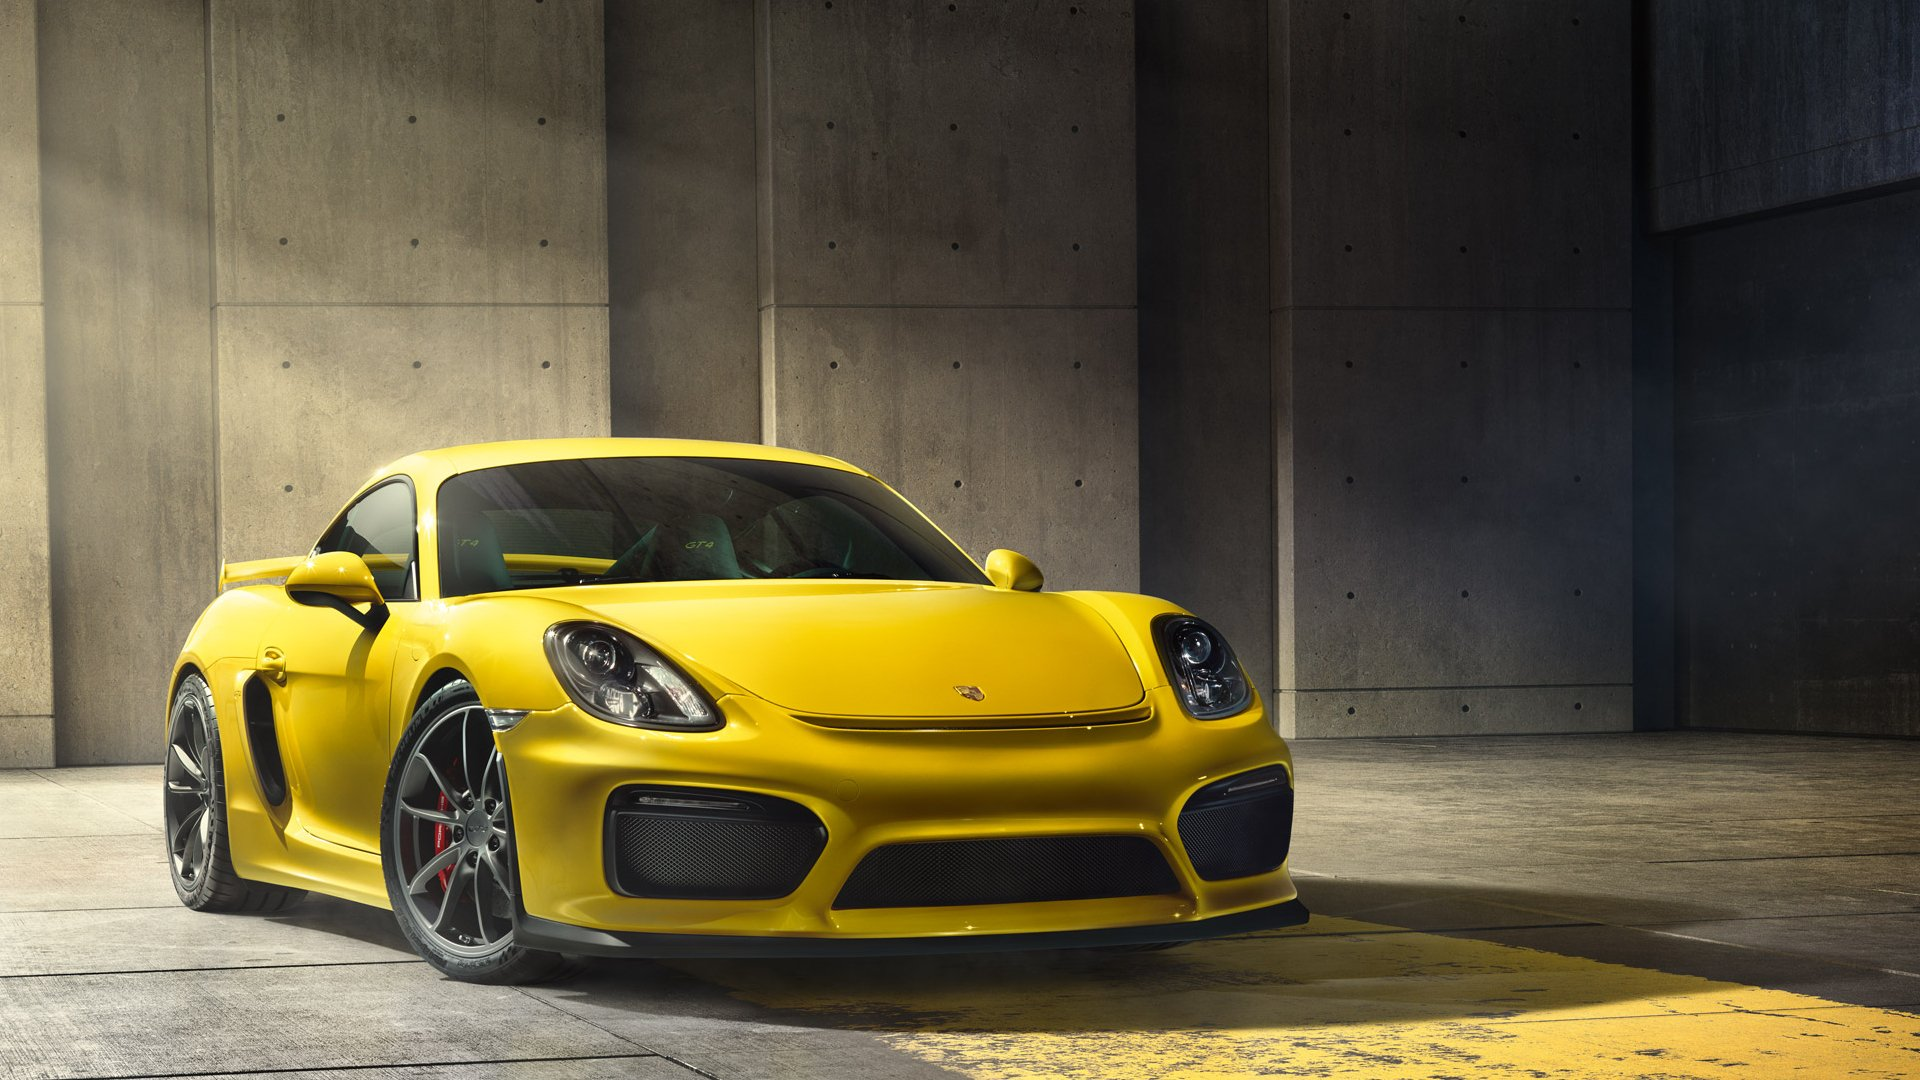 Porsche Cayman GT4 HD Wallpaper